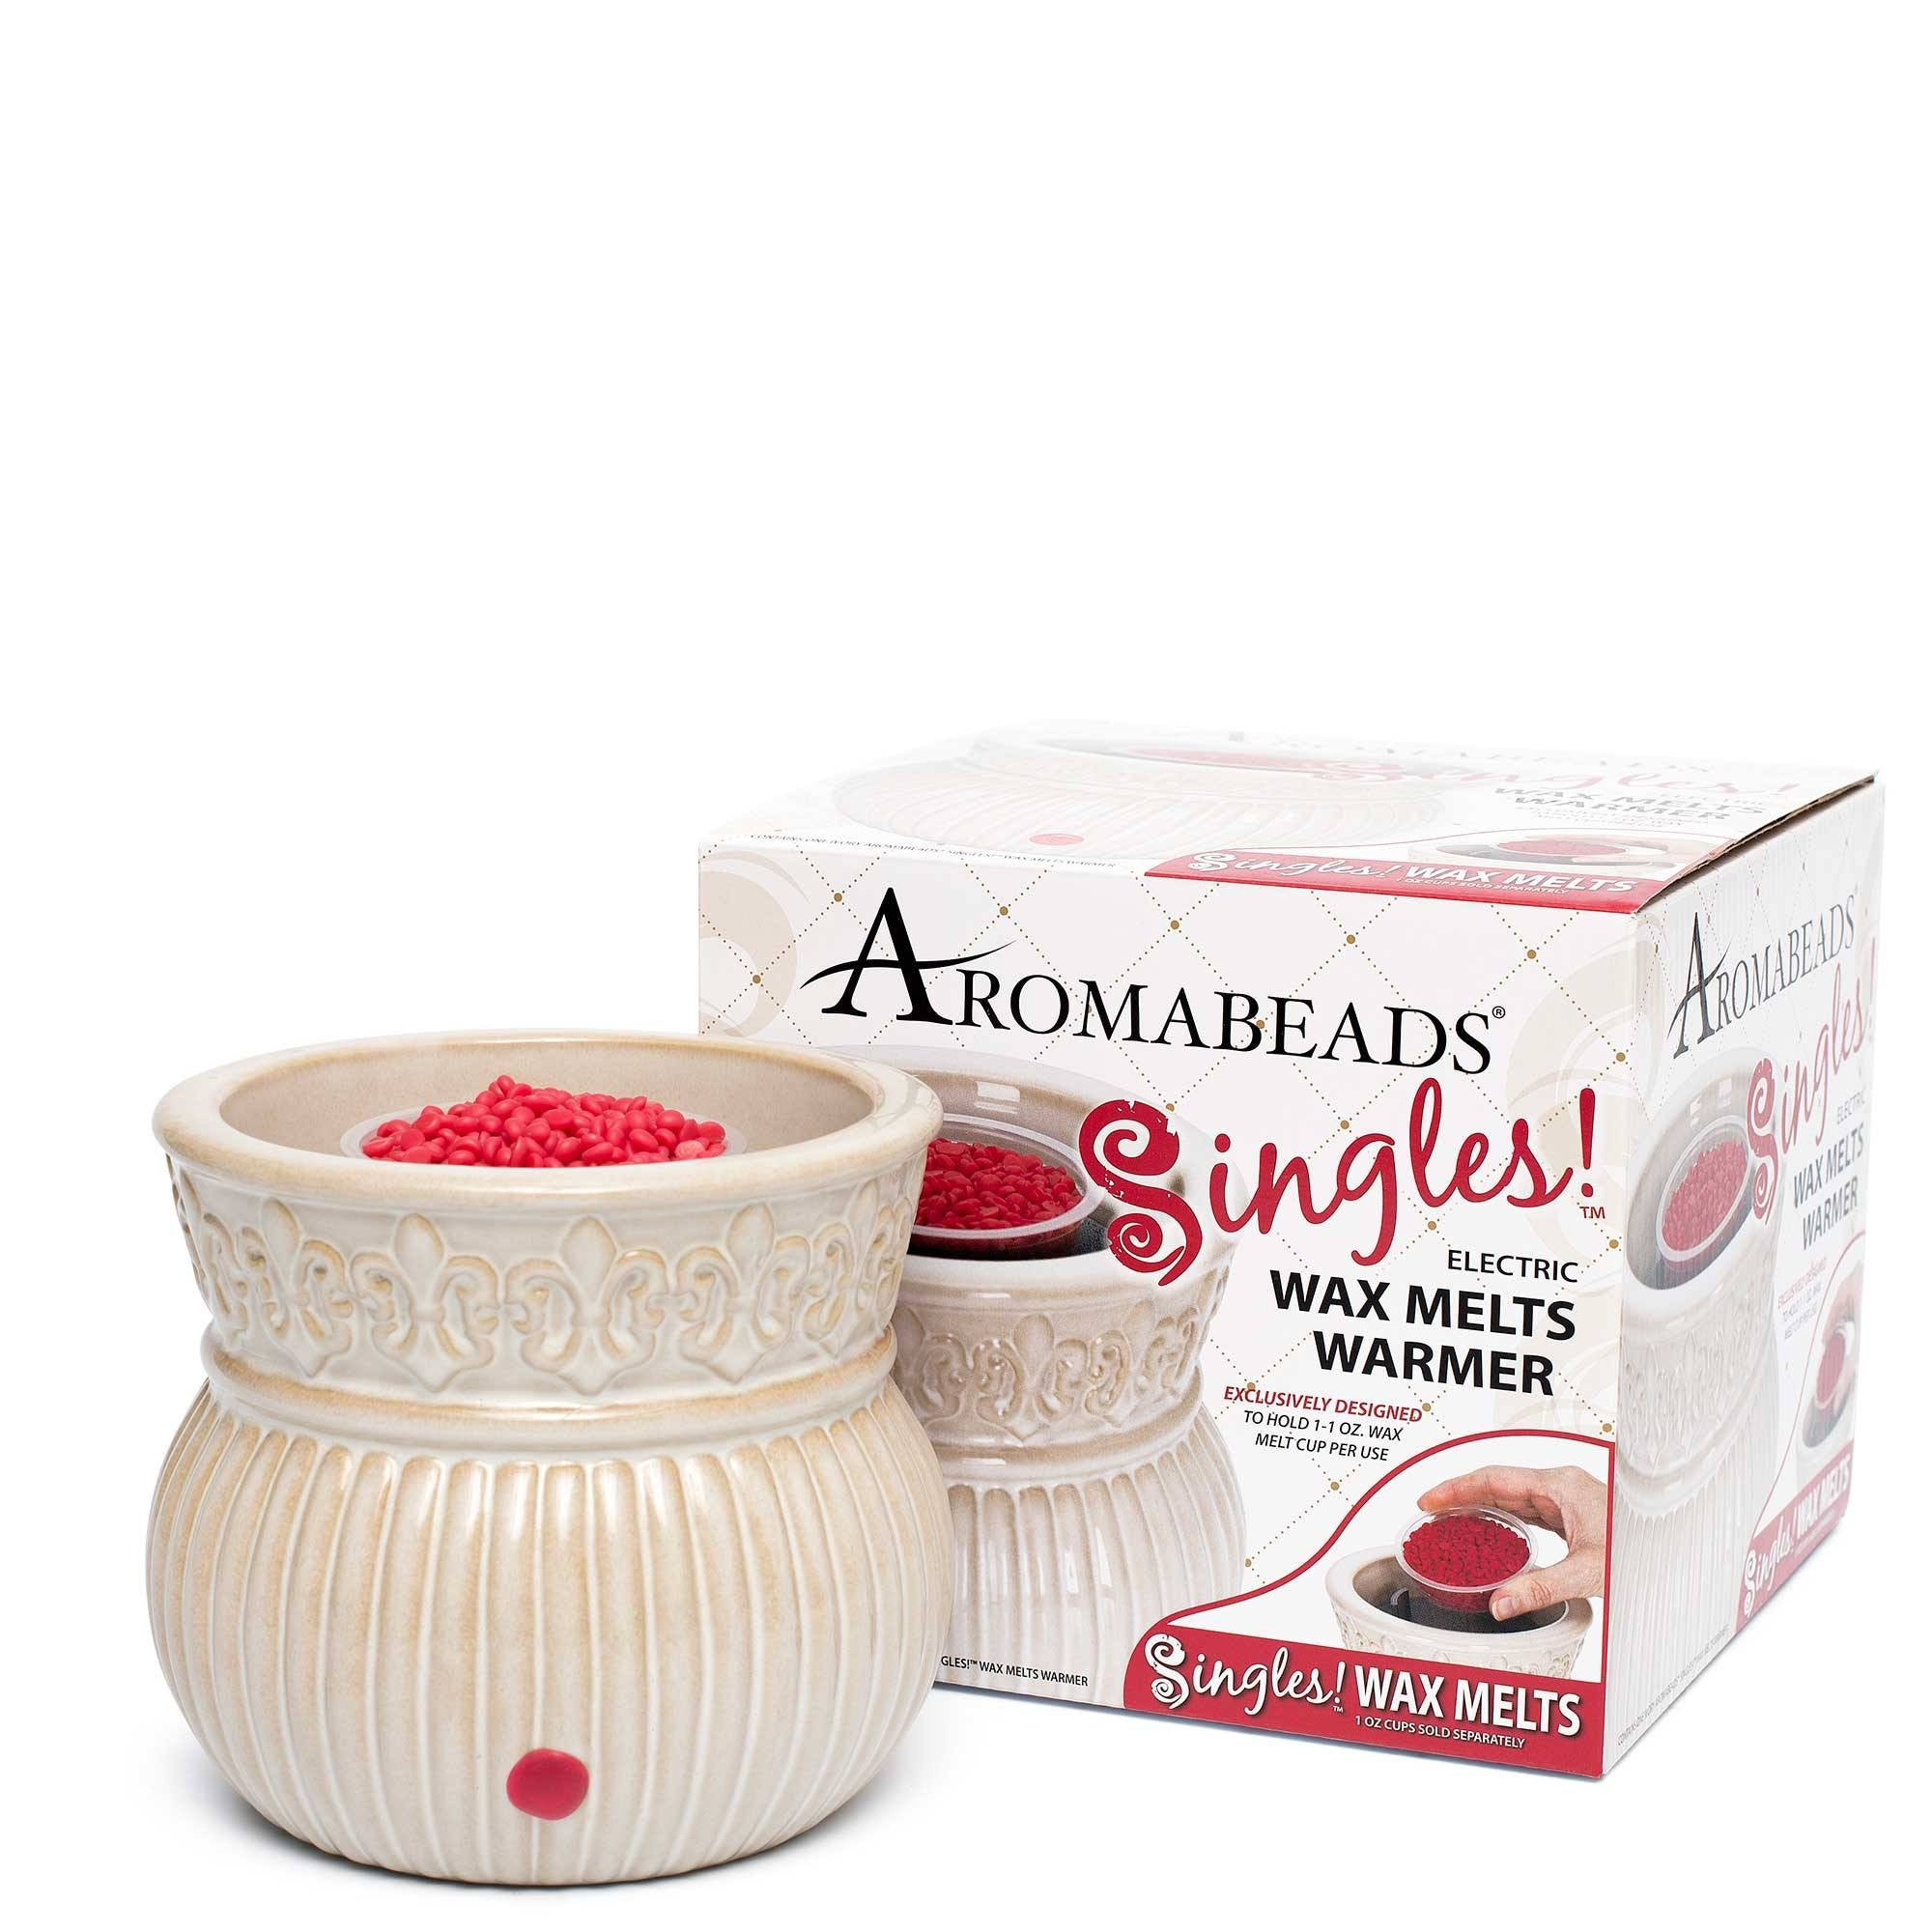 Aromabeads Singles Luxurious Velvet Woods Scented Wax Melts - Candlemart.com - 3